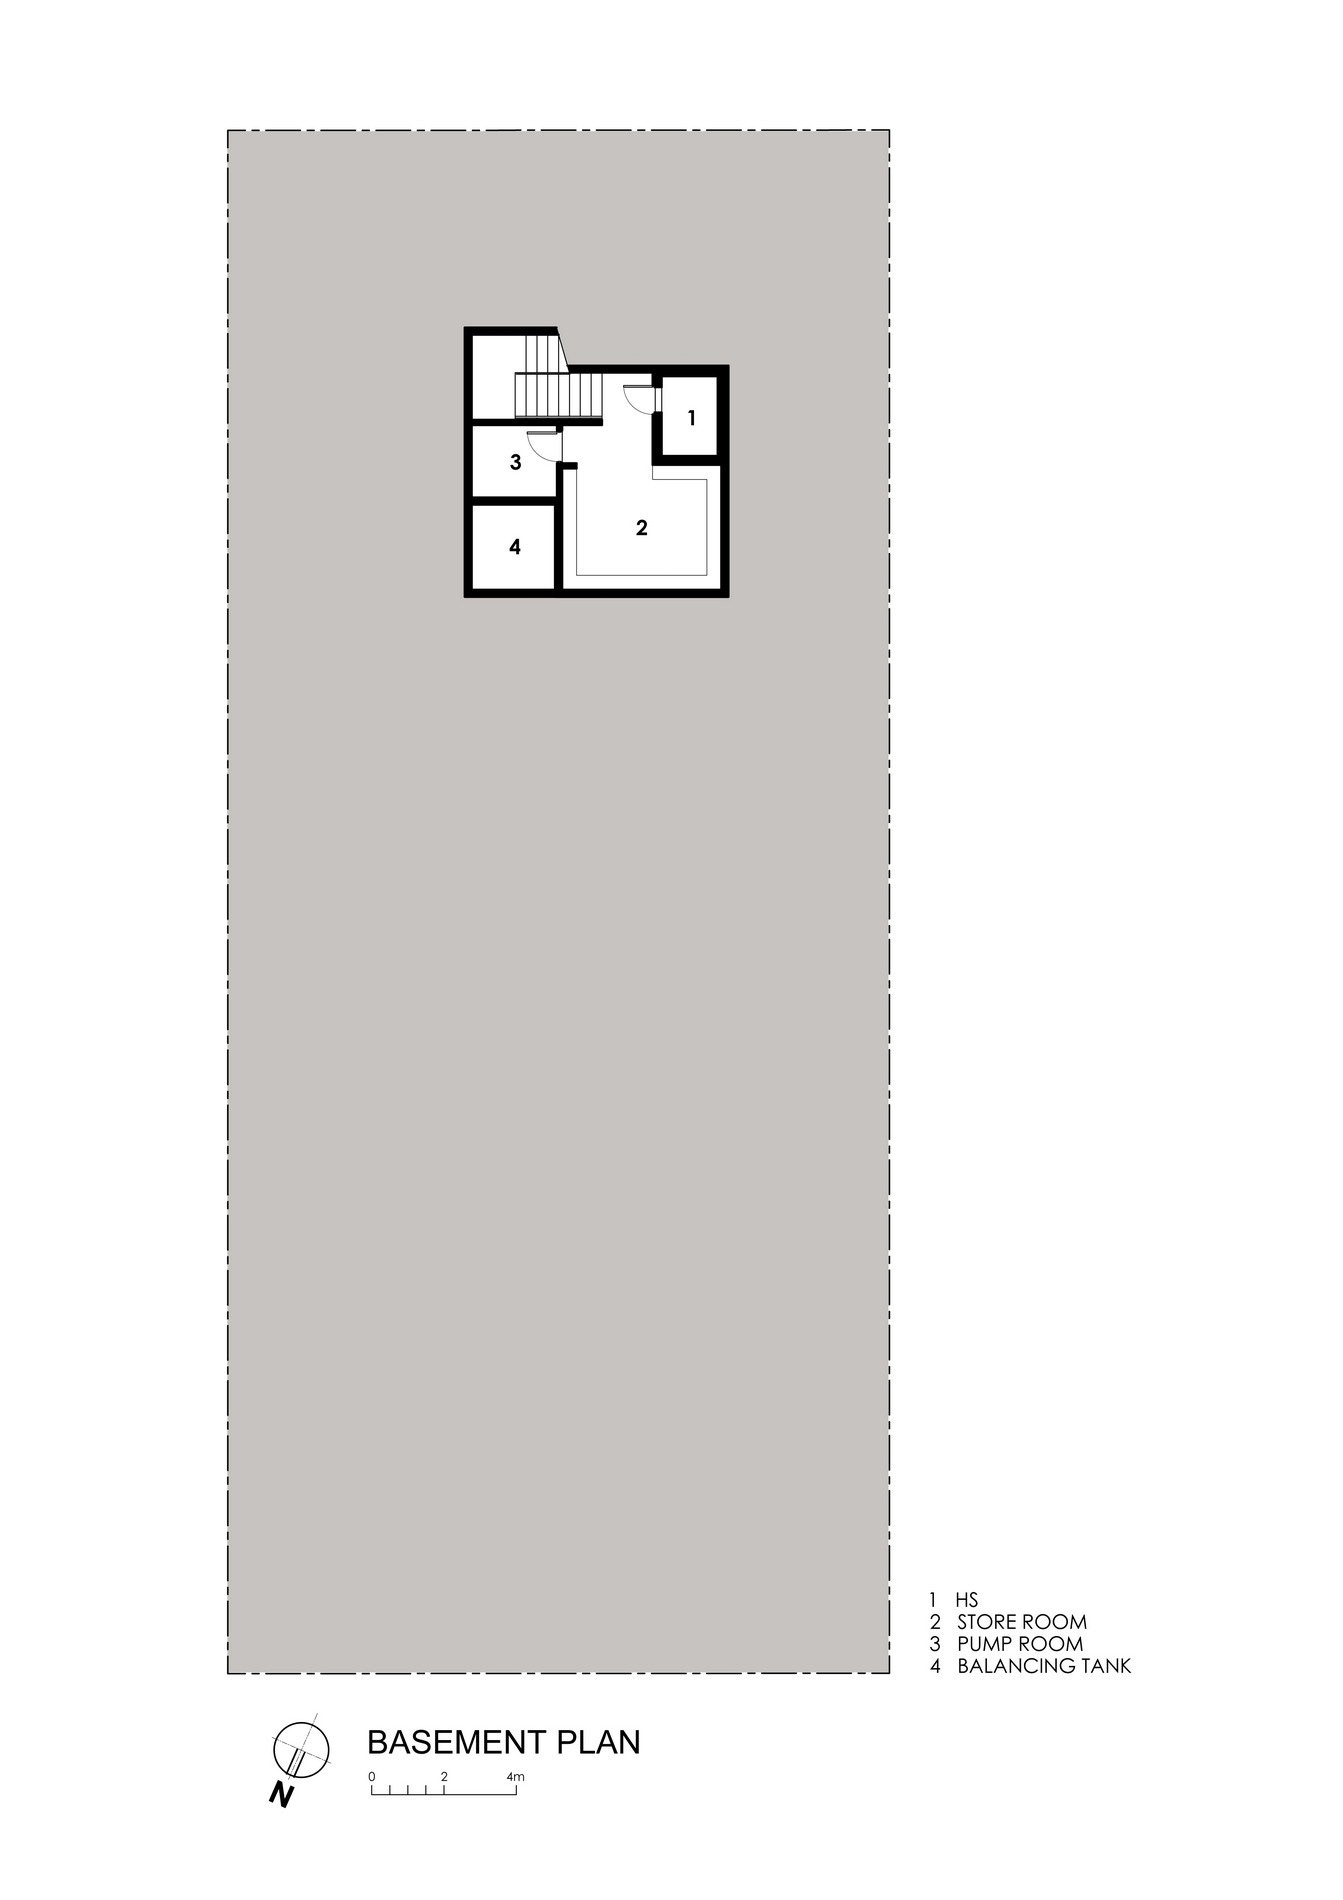 Basement Floor Plan - Centennial Tree House Luxury Residence - Dunbar Walk, Singapore